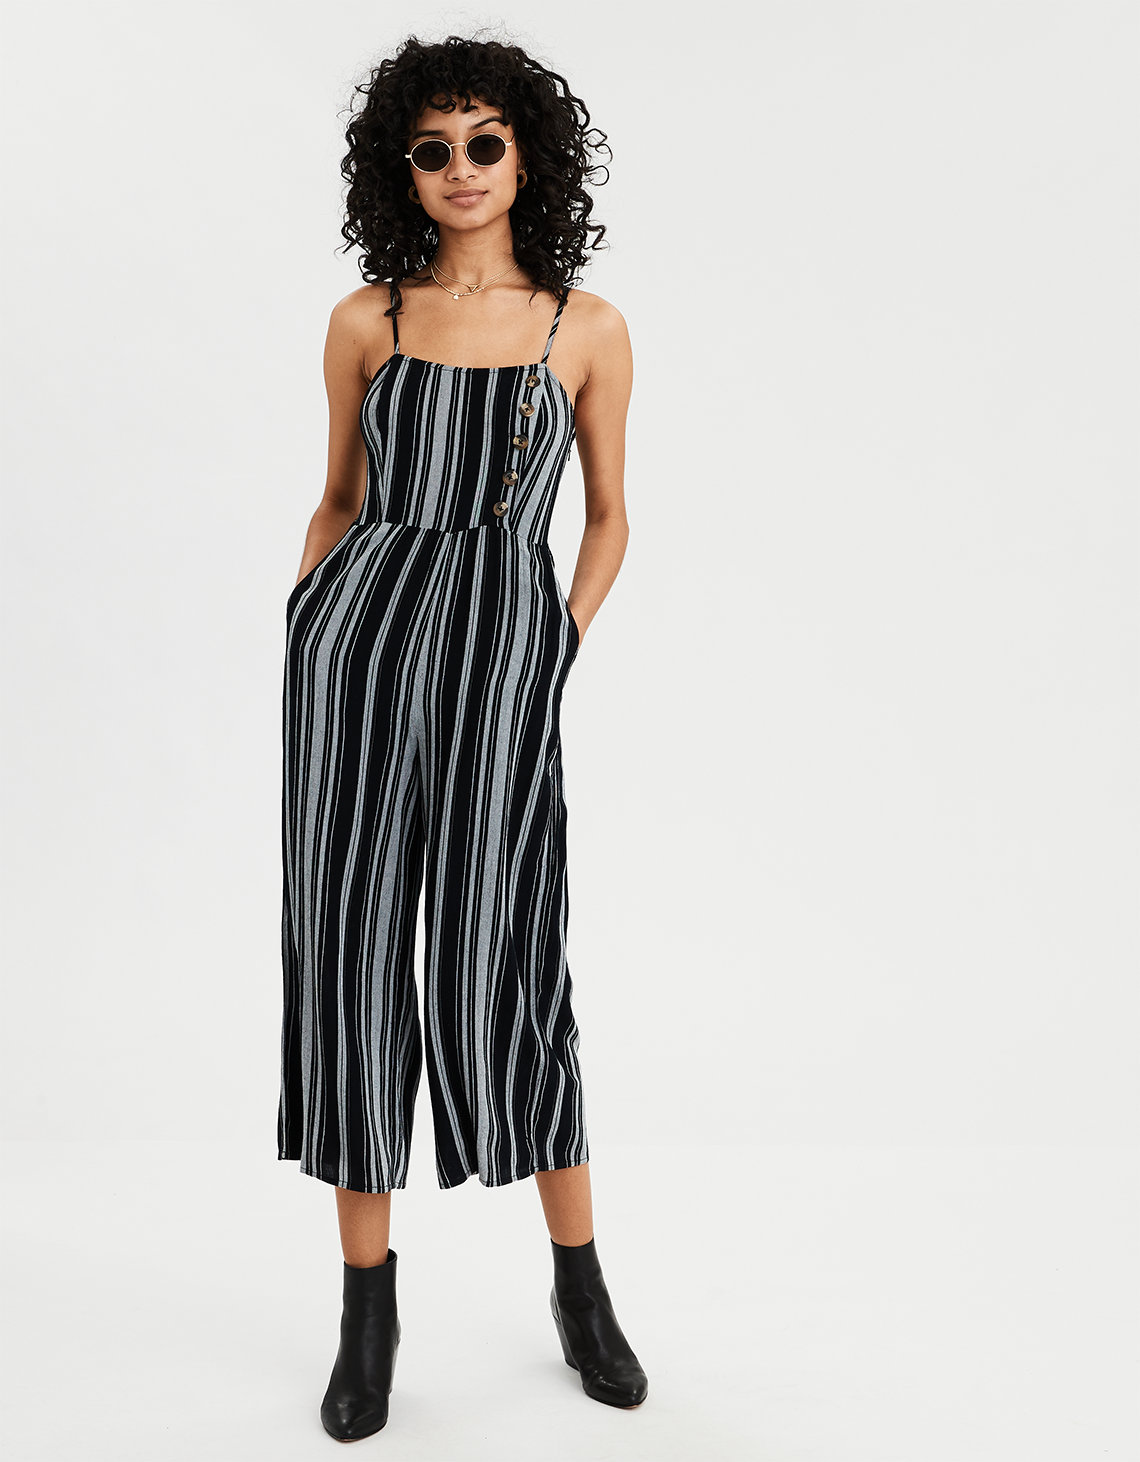 bf7e2c88c41 AE Striped Button Front Jumpsuit. Placeholder image. Product Image